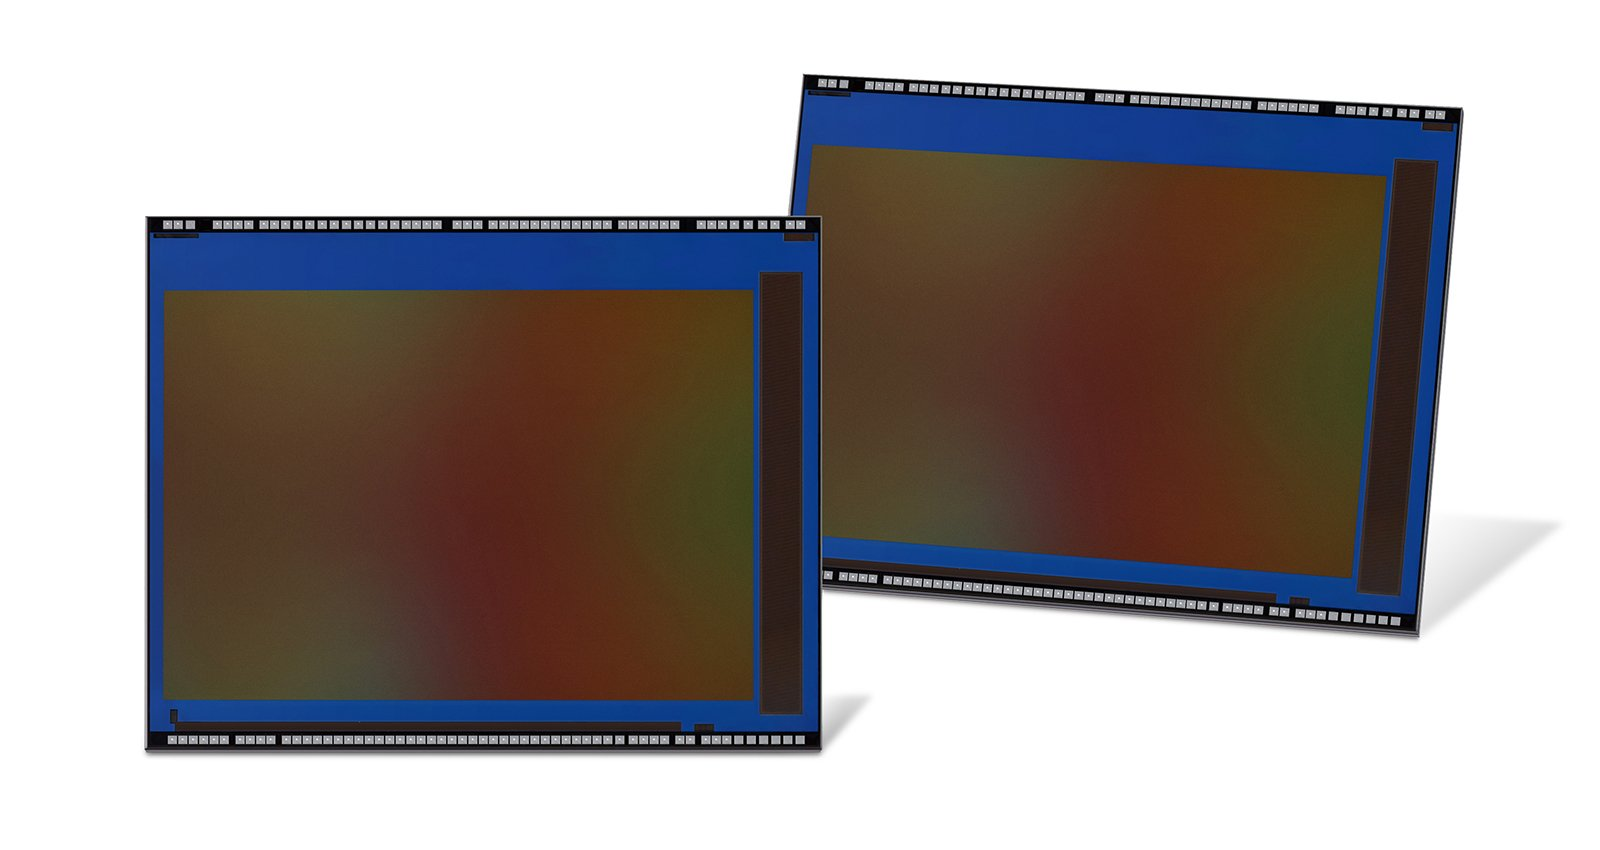 Samsung Unveils 43.7MP Smartphone Sensor with the World's Smallest Pixels